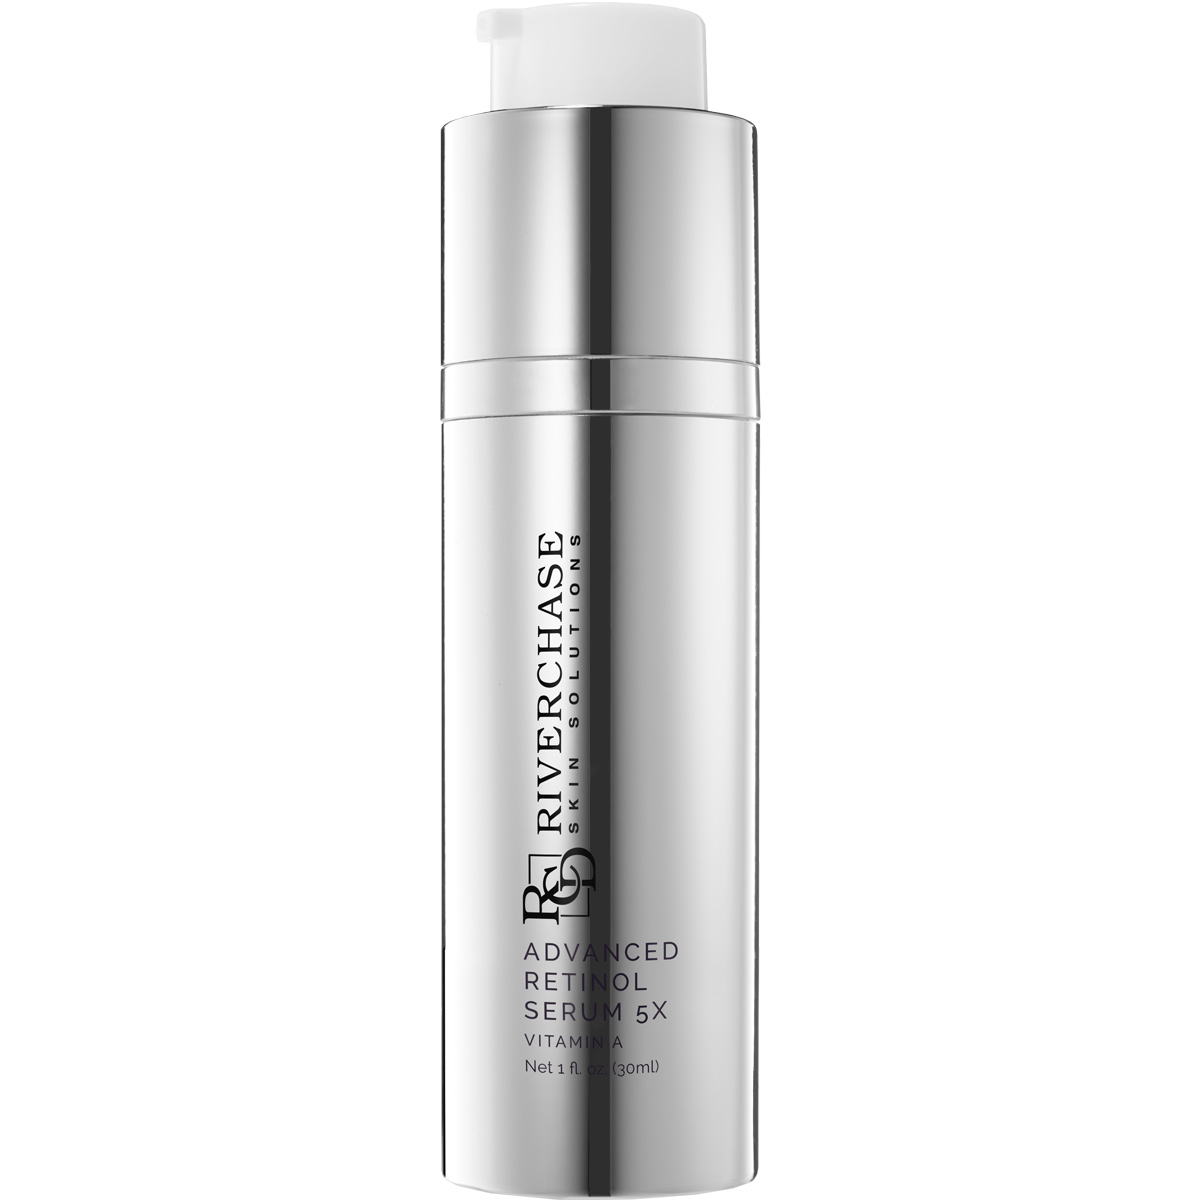 Advanced Retinol Serum 5X